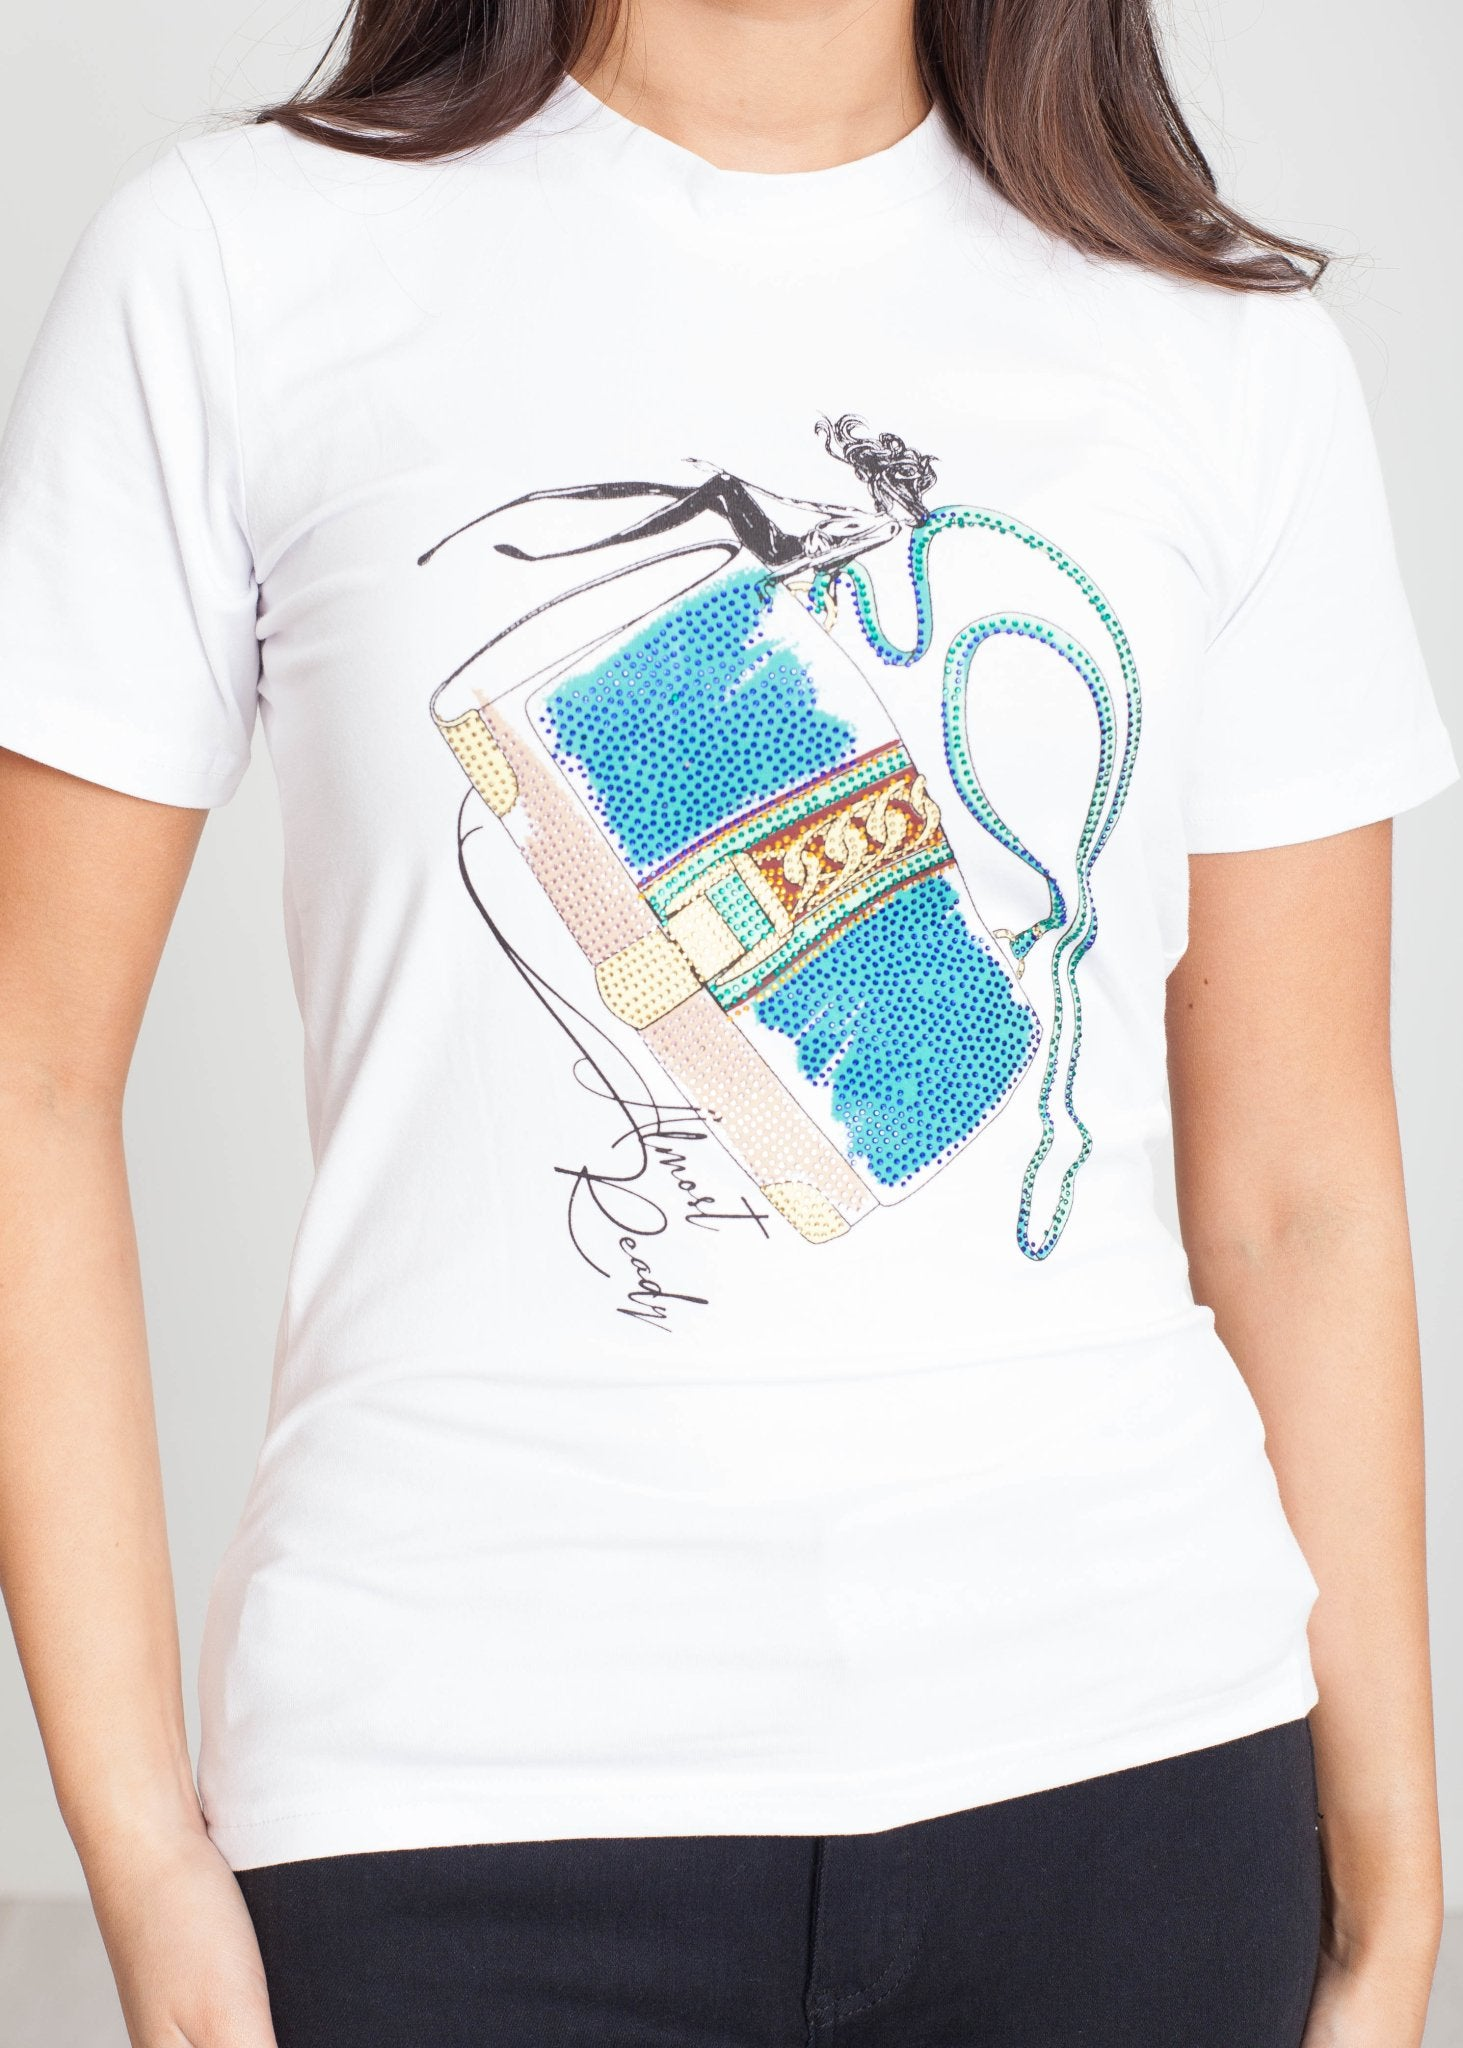 Tina T-Shirt With Handbag Print - The Walk in Wardrobe